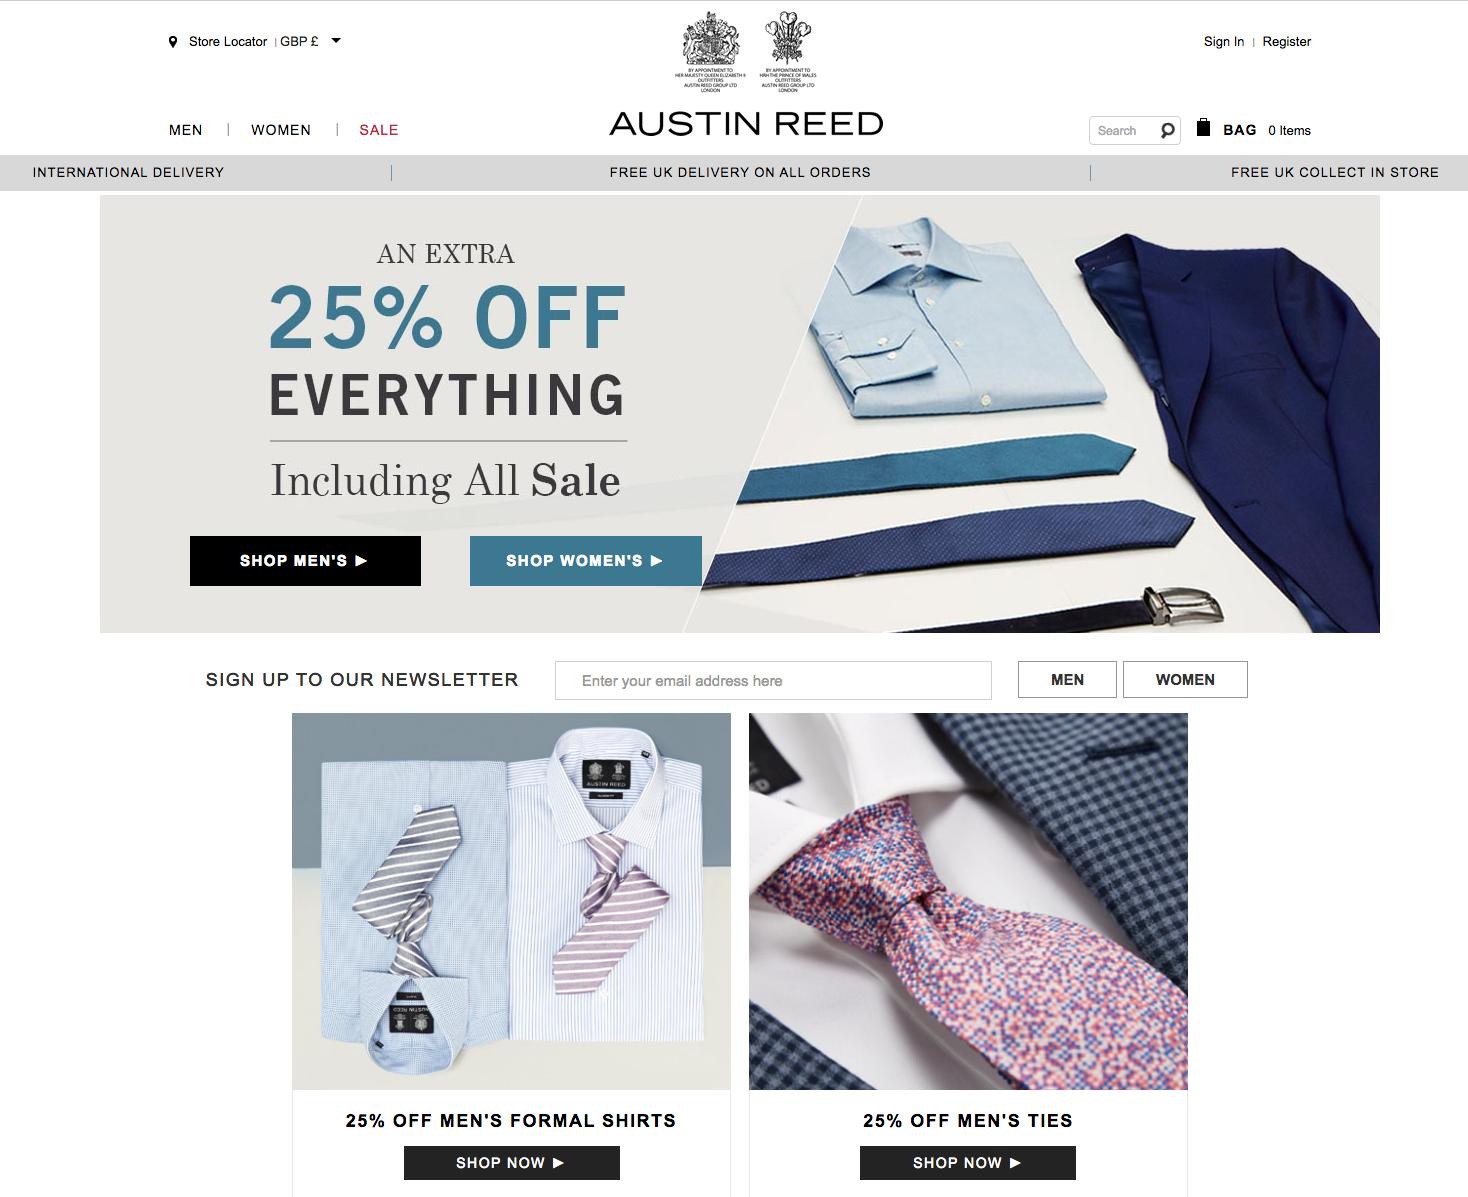 Bhs Austin Reed Retail Failures Are Clicks More Important Than Bricks